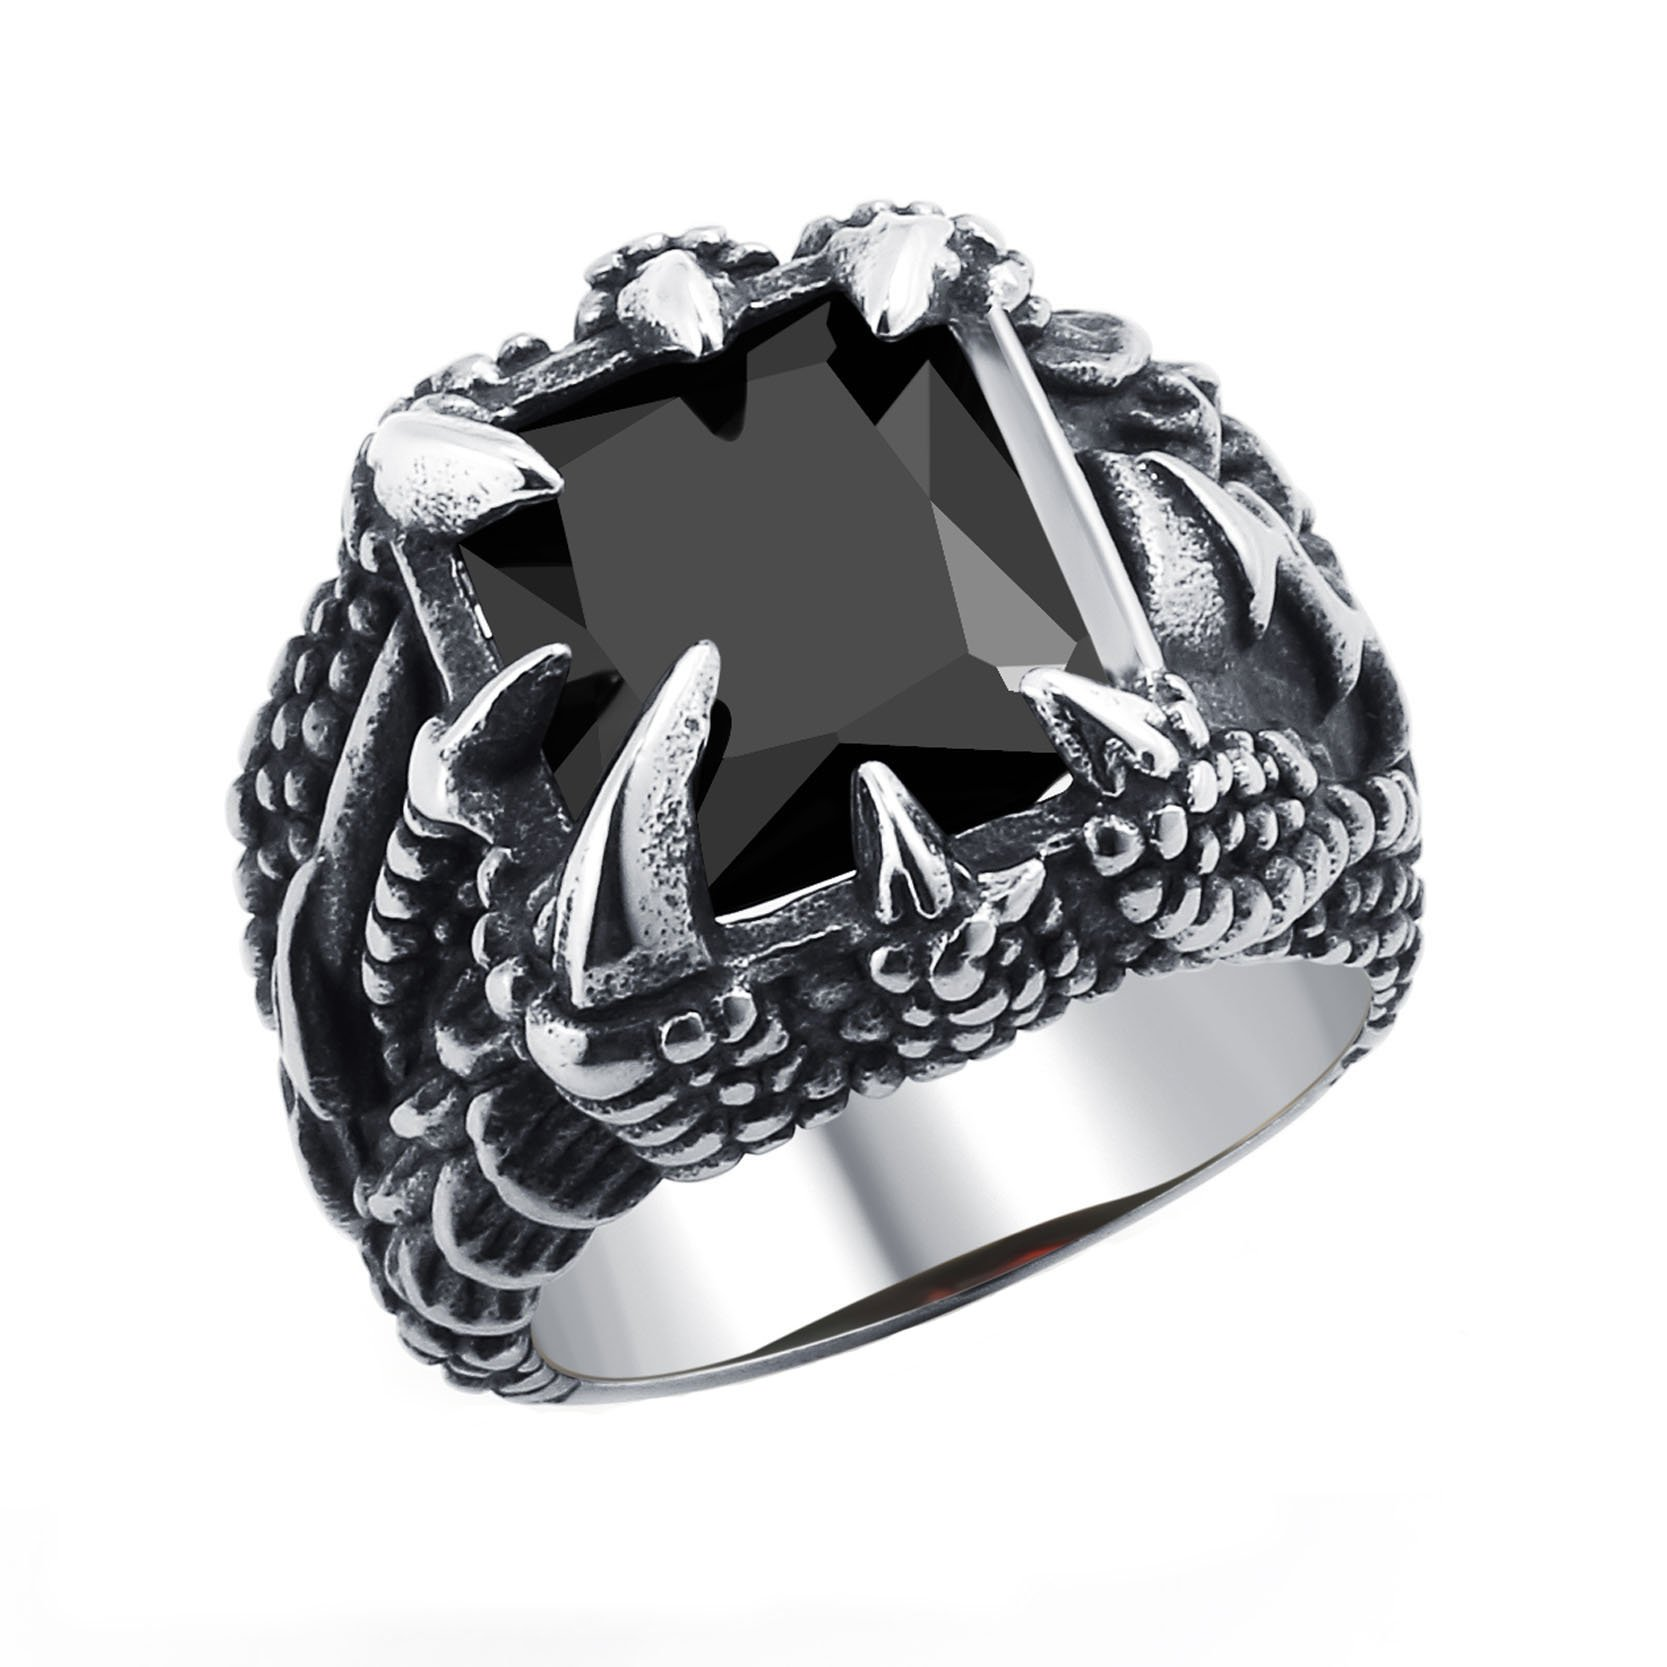 Fashion Dragon Gothic Band with Black Crystal Claw Ring for Men Size 8 Party Jewelry with Gift Box